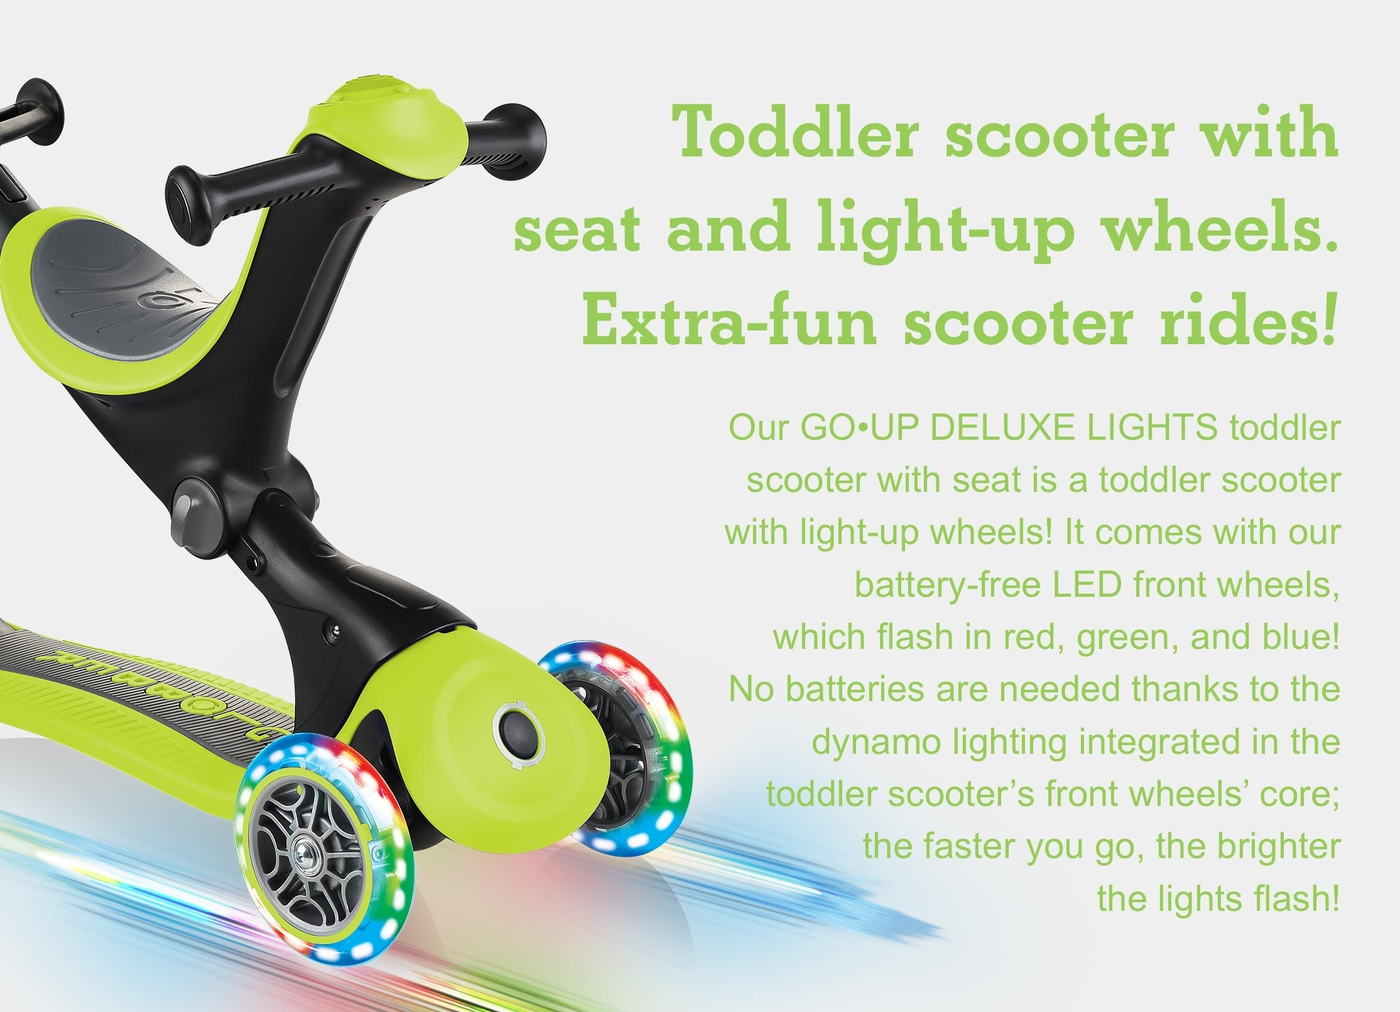 Toddler scooter with seat and light-up wheels. Extra-fun scooter rides! Our GO•UP DELUXE LIGHTS toddler scooter with seat is a toddler scooter with light-up wheels! It comes with our battery-free LED front wheels, which flash in red, green, and blue! No batteries are needed thanks to the dynamo lighting integrated in the toddler scooter's front wheels' core; the faster you go, the brighter the lights flash!